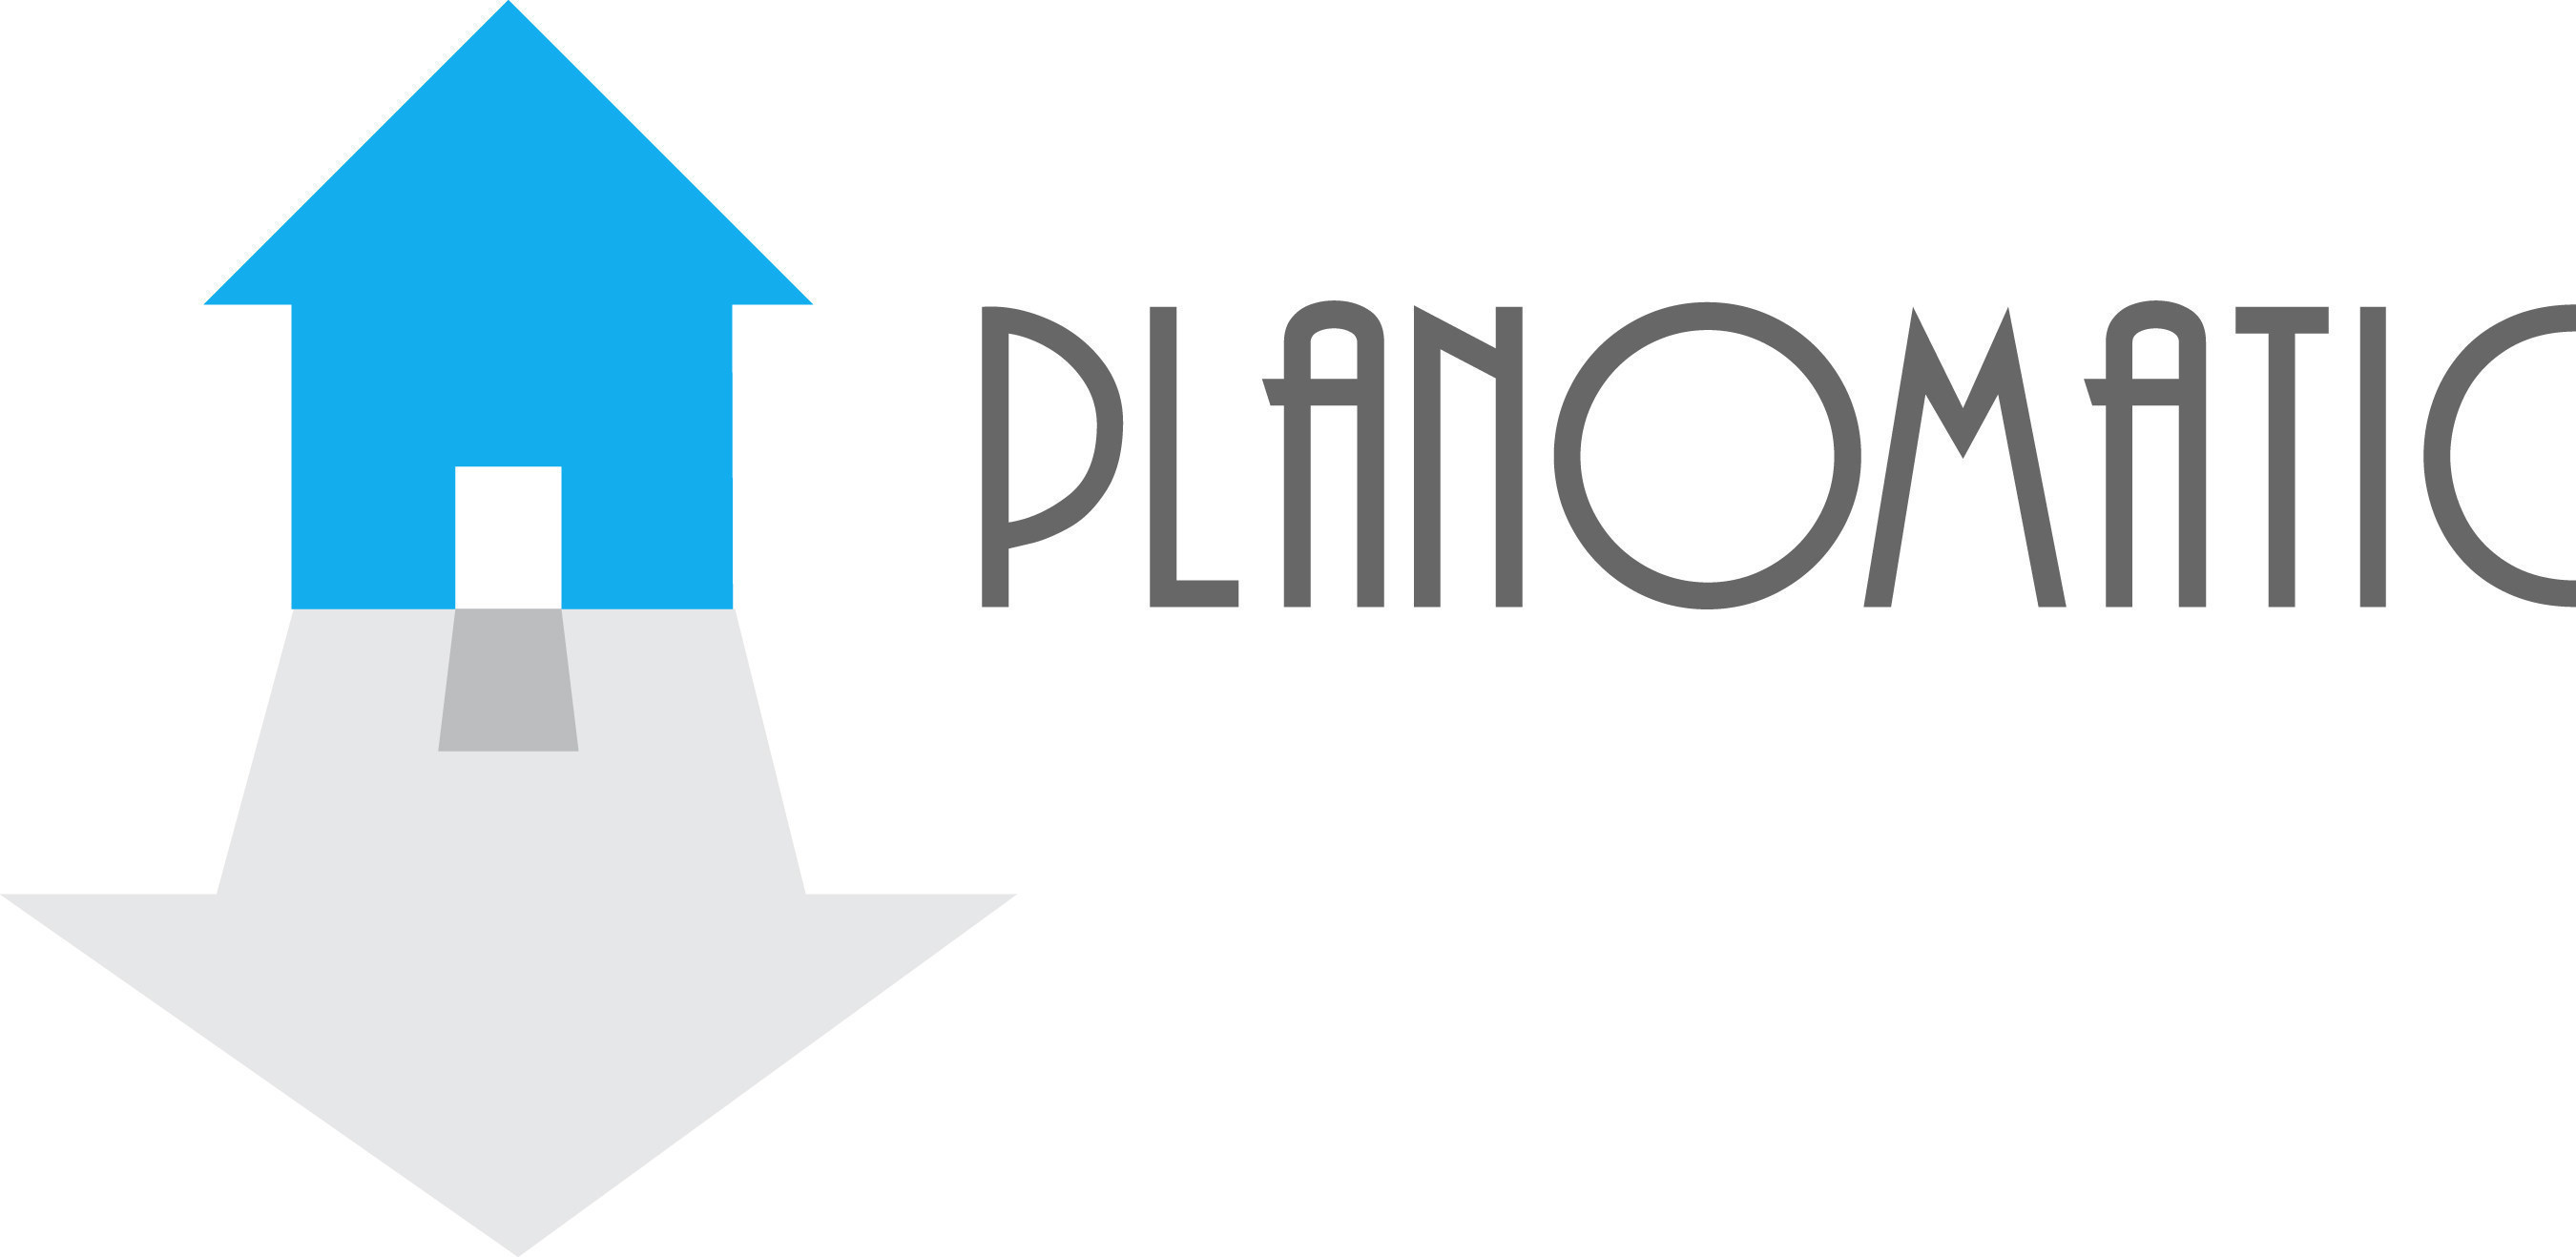 Planomatic Celebrates 10 Years In Business, Achieves More Than 50 Percent Revenue Growth In 2015